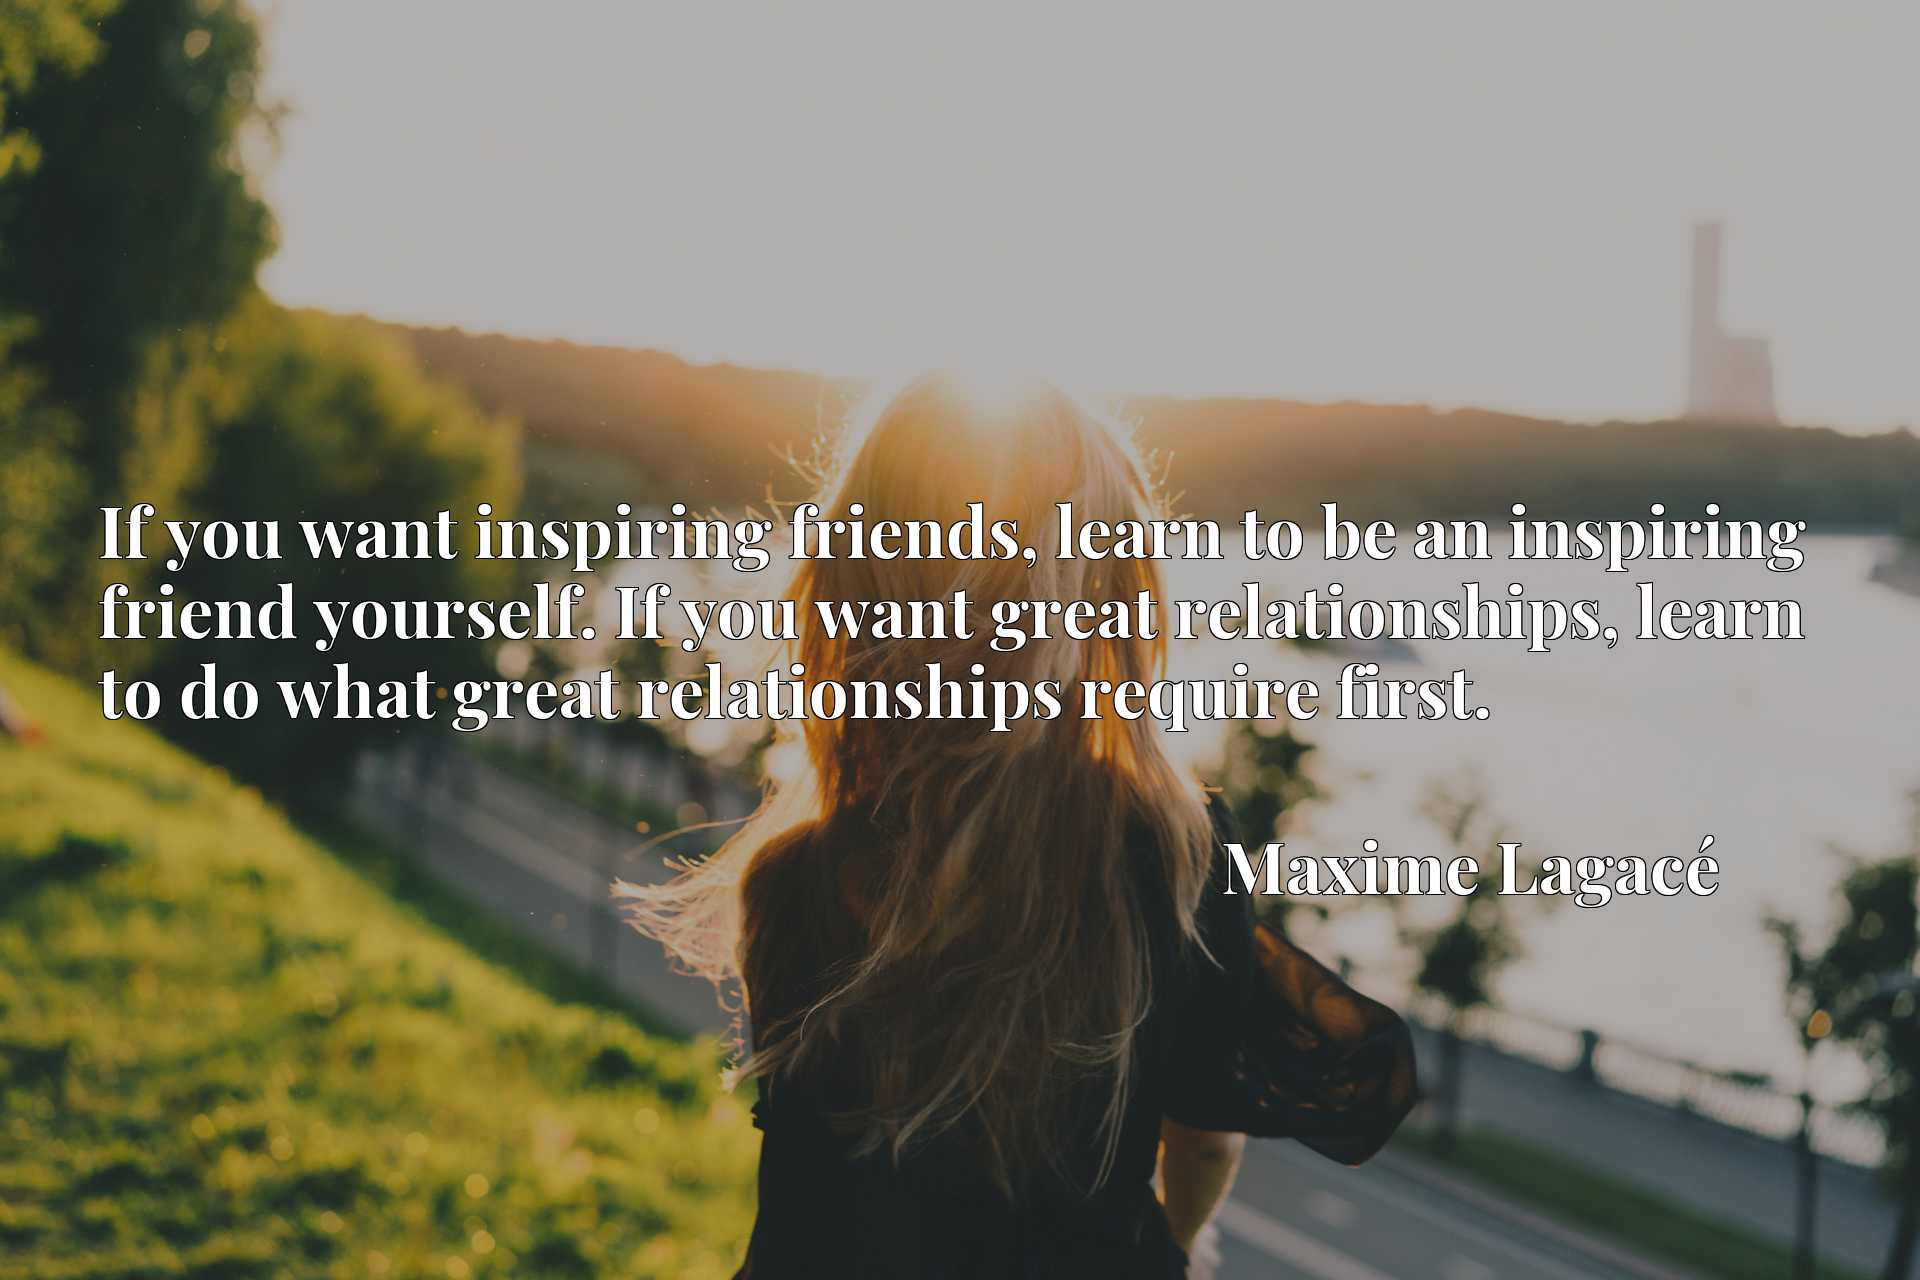 If you want inspiring friends, learn to be an inspiring friend yourself. If you want great relationships, learn to do what great relationships require first.